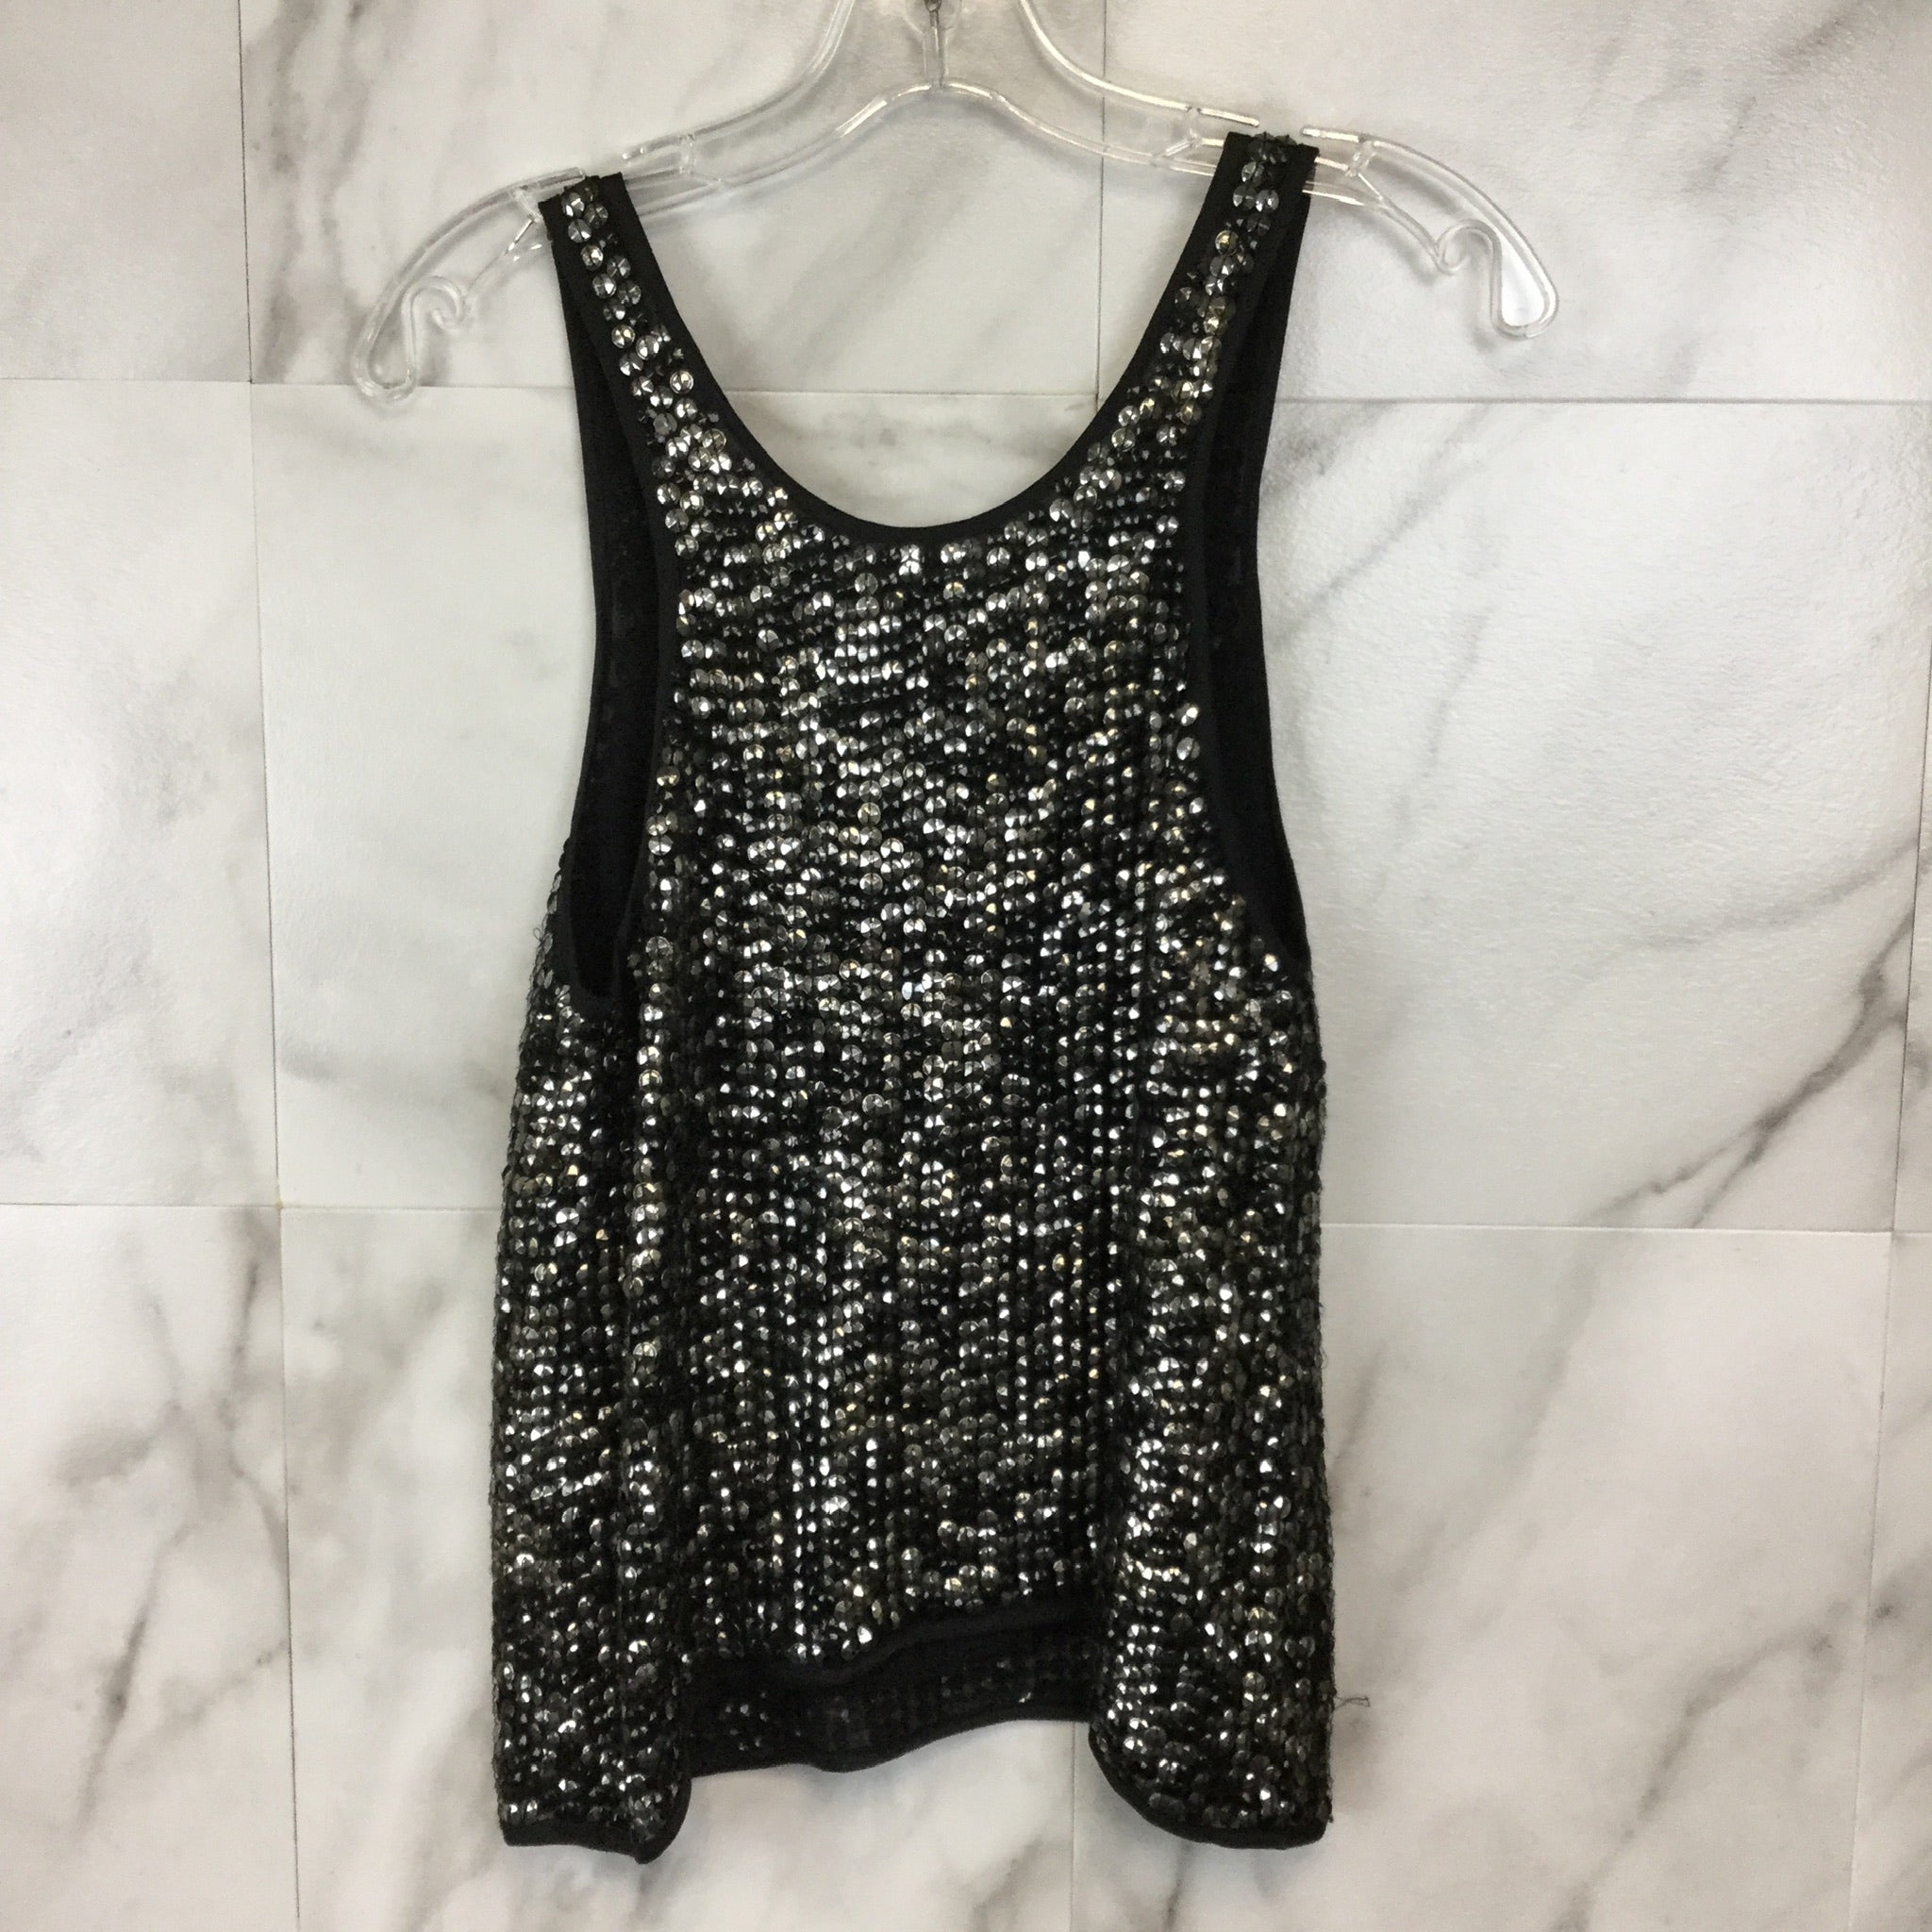 Milly Sequin Tank Top - Size 0